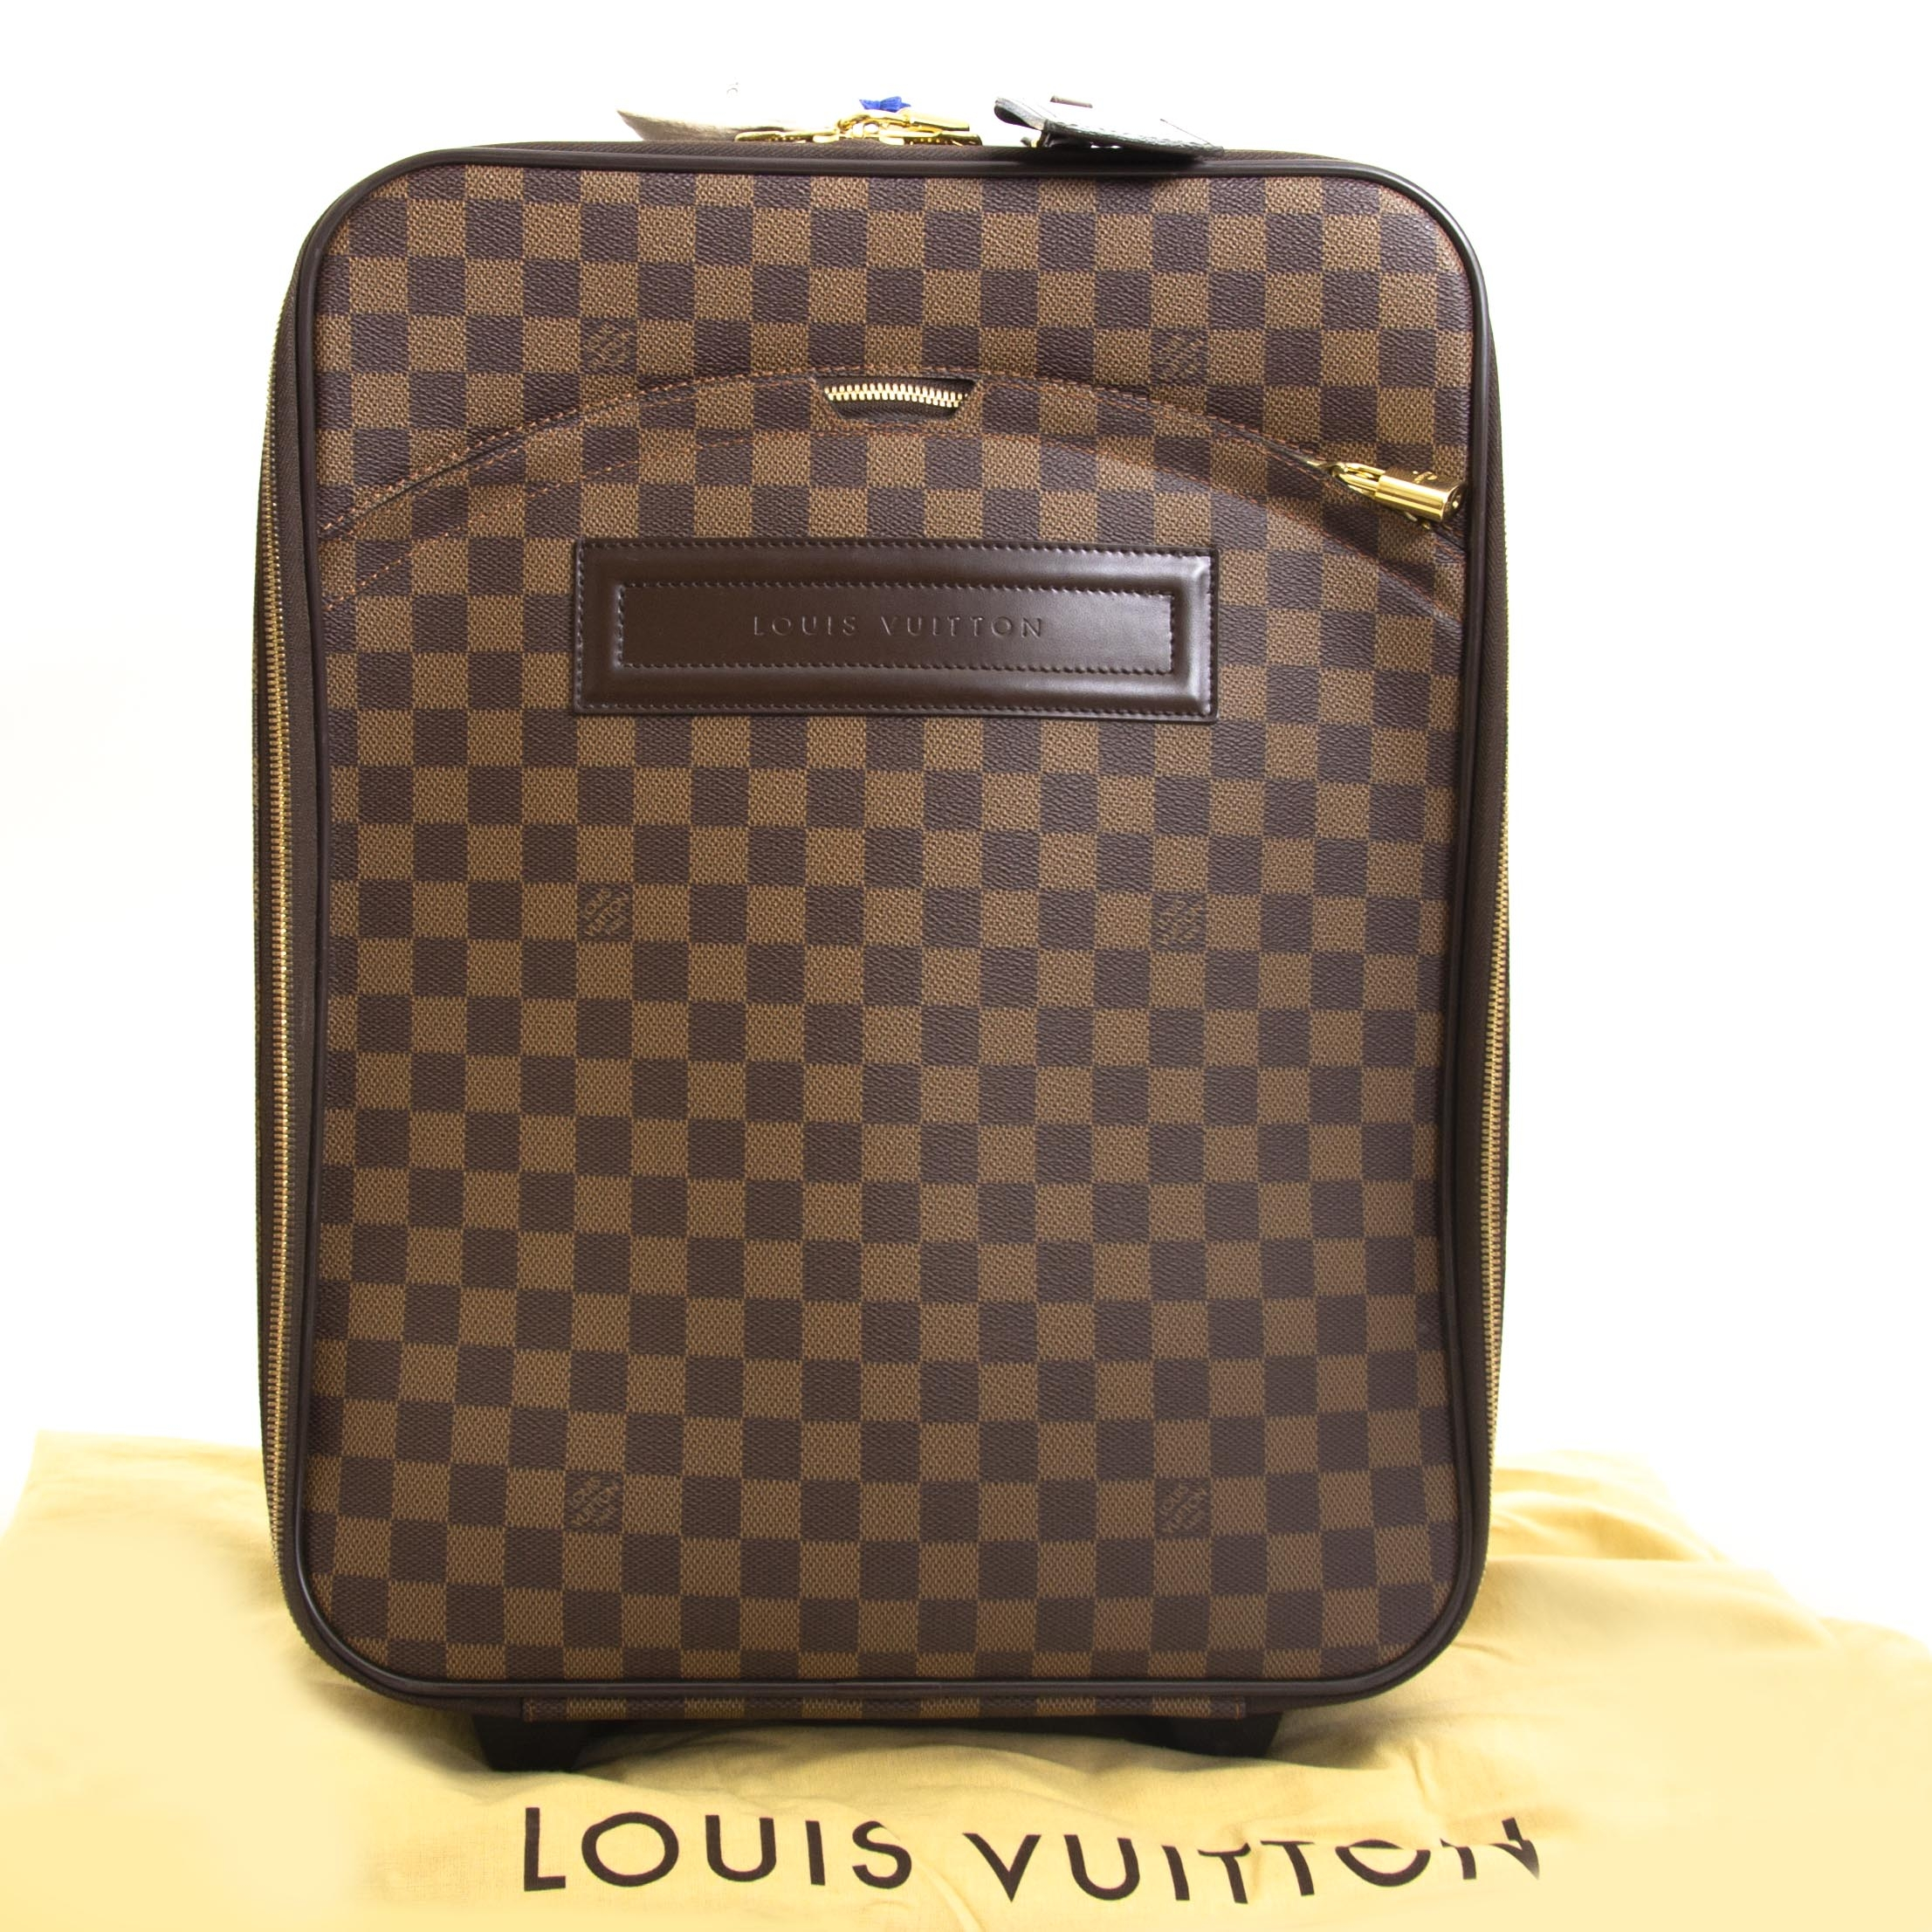 ... Louis Vuitton Damier Ebene Pegase 45 Rolling Luggage now for sale at  labellov vintage fashion webshop 0ae278ffc3f